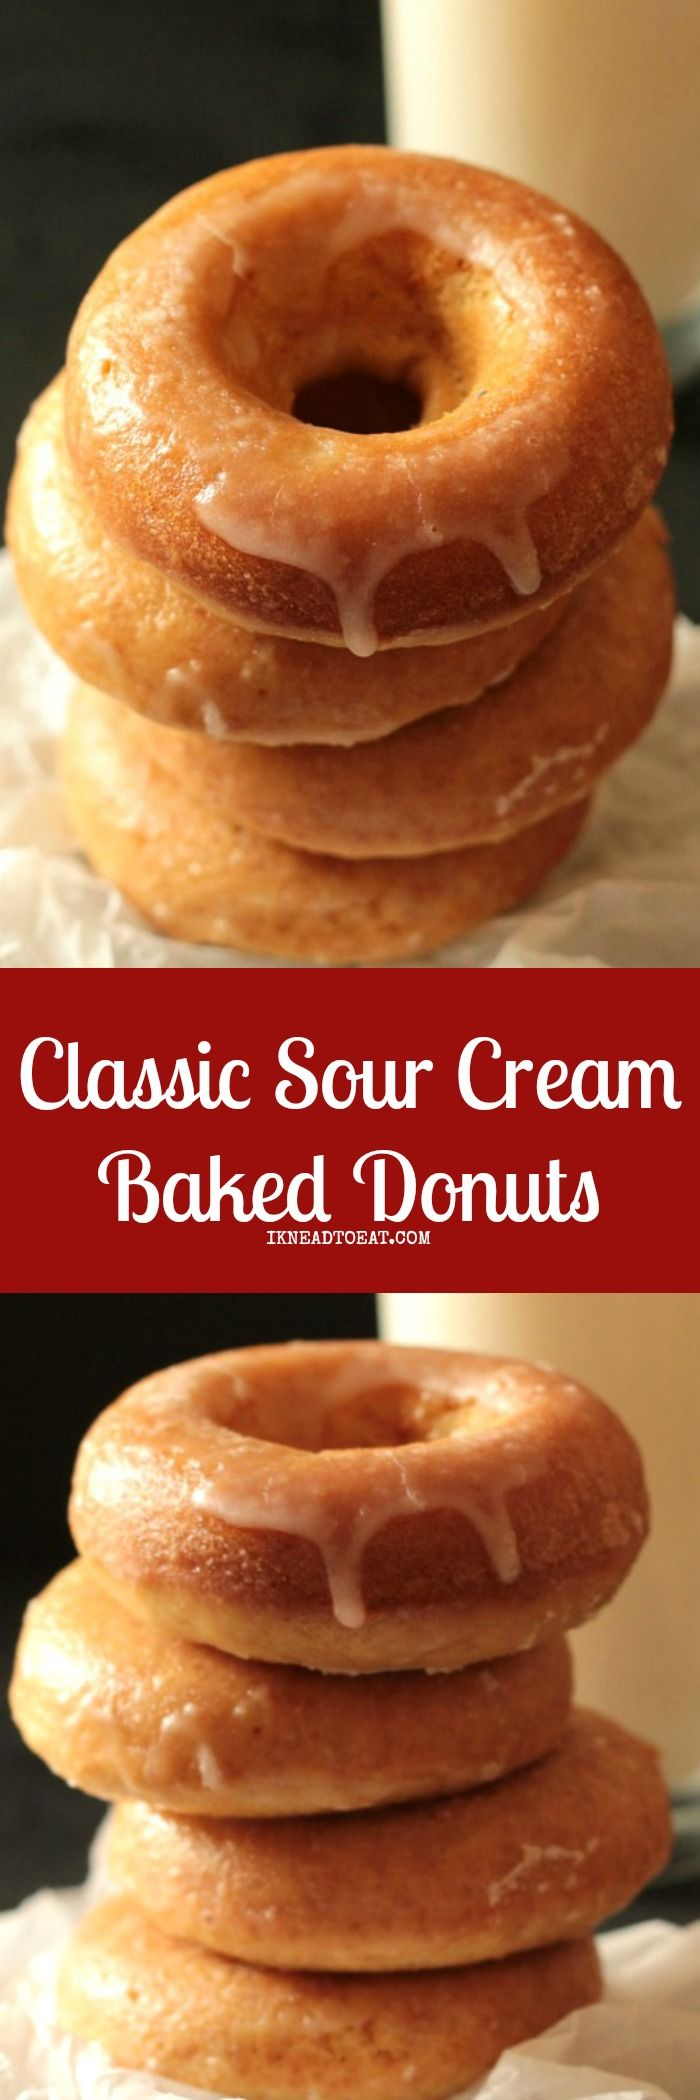 Classic Sour Cream Baked Donuts: These are just as quick and easy to make as stated. I made 6 bigger ones and doubled dipped in the glaze. Not overly sweet with a hint of cinnamon and SO MOIST!